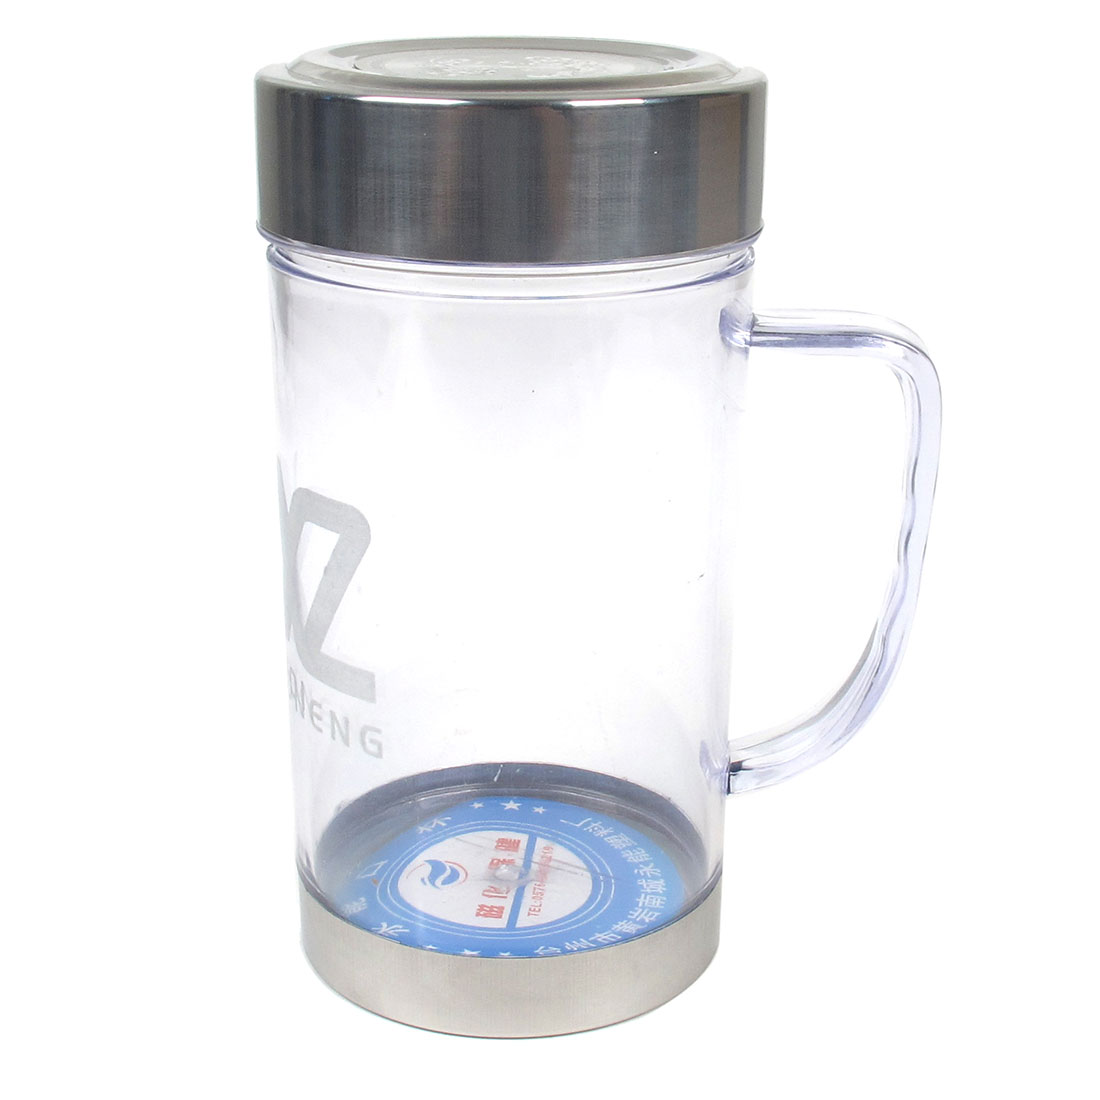 Unique Bargains 350ml Capacity Cylindric Shape Plastic Clear Water Drinking Bottle Holder